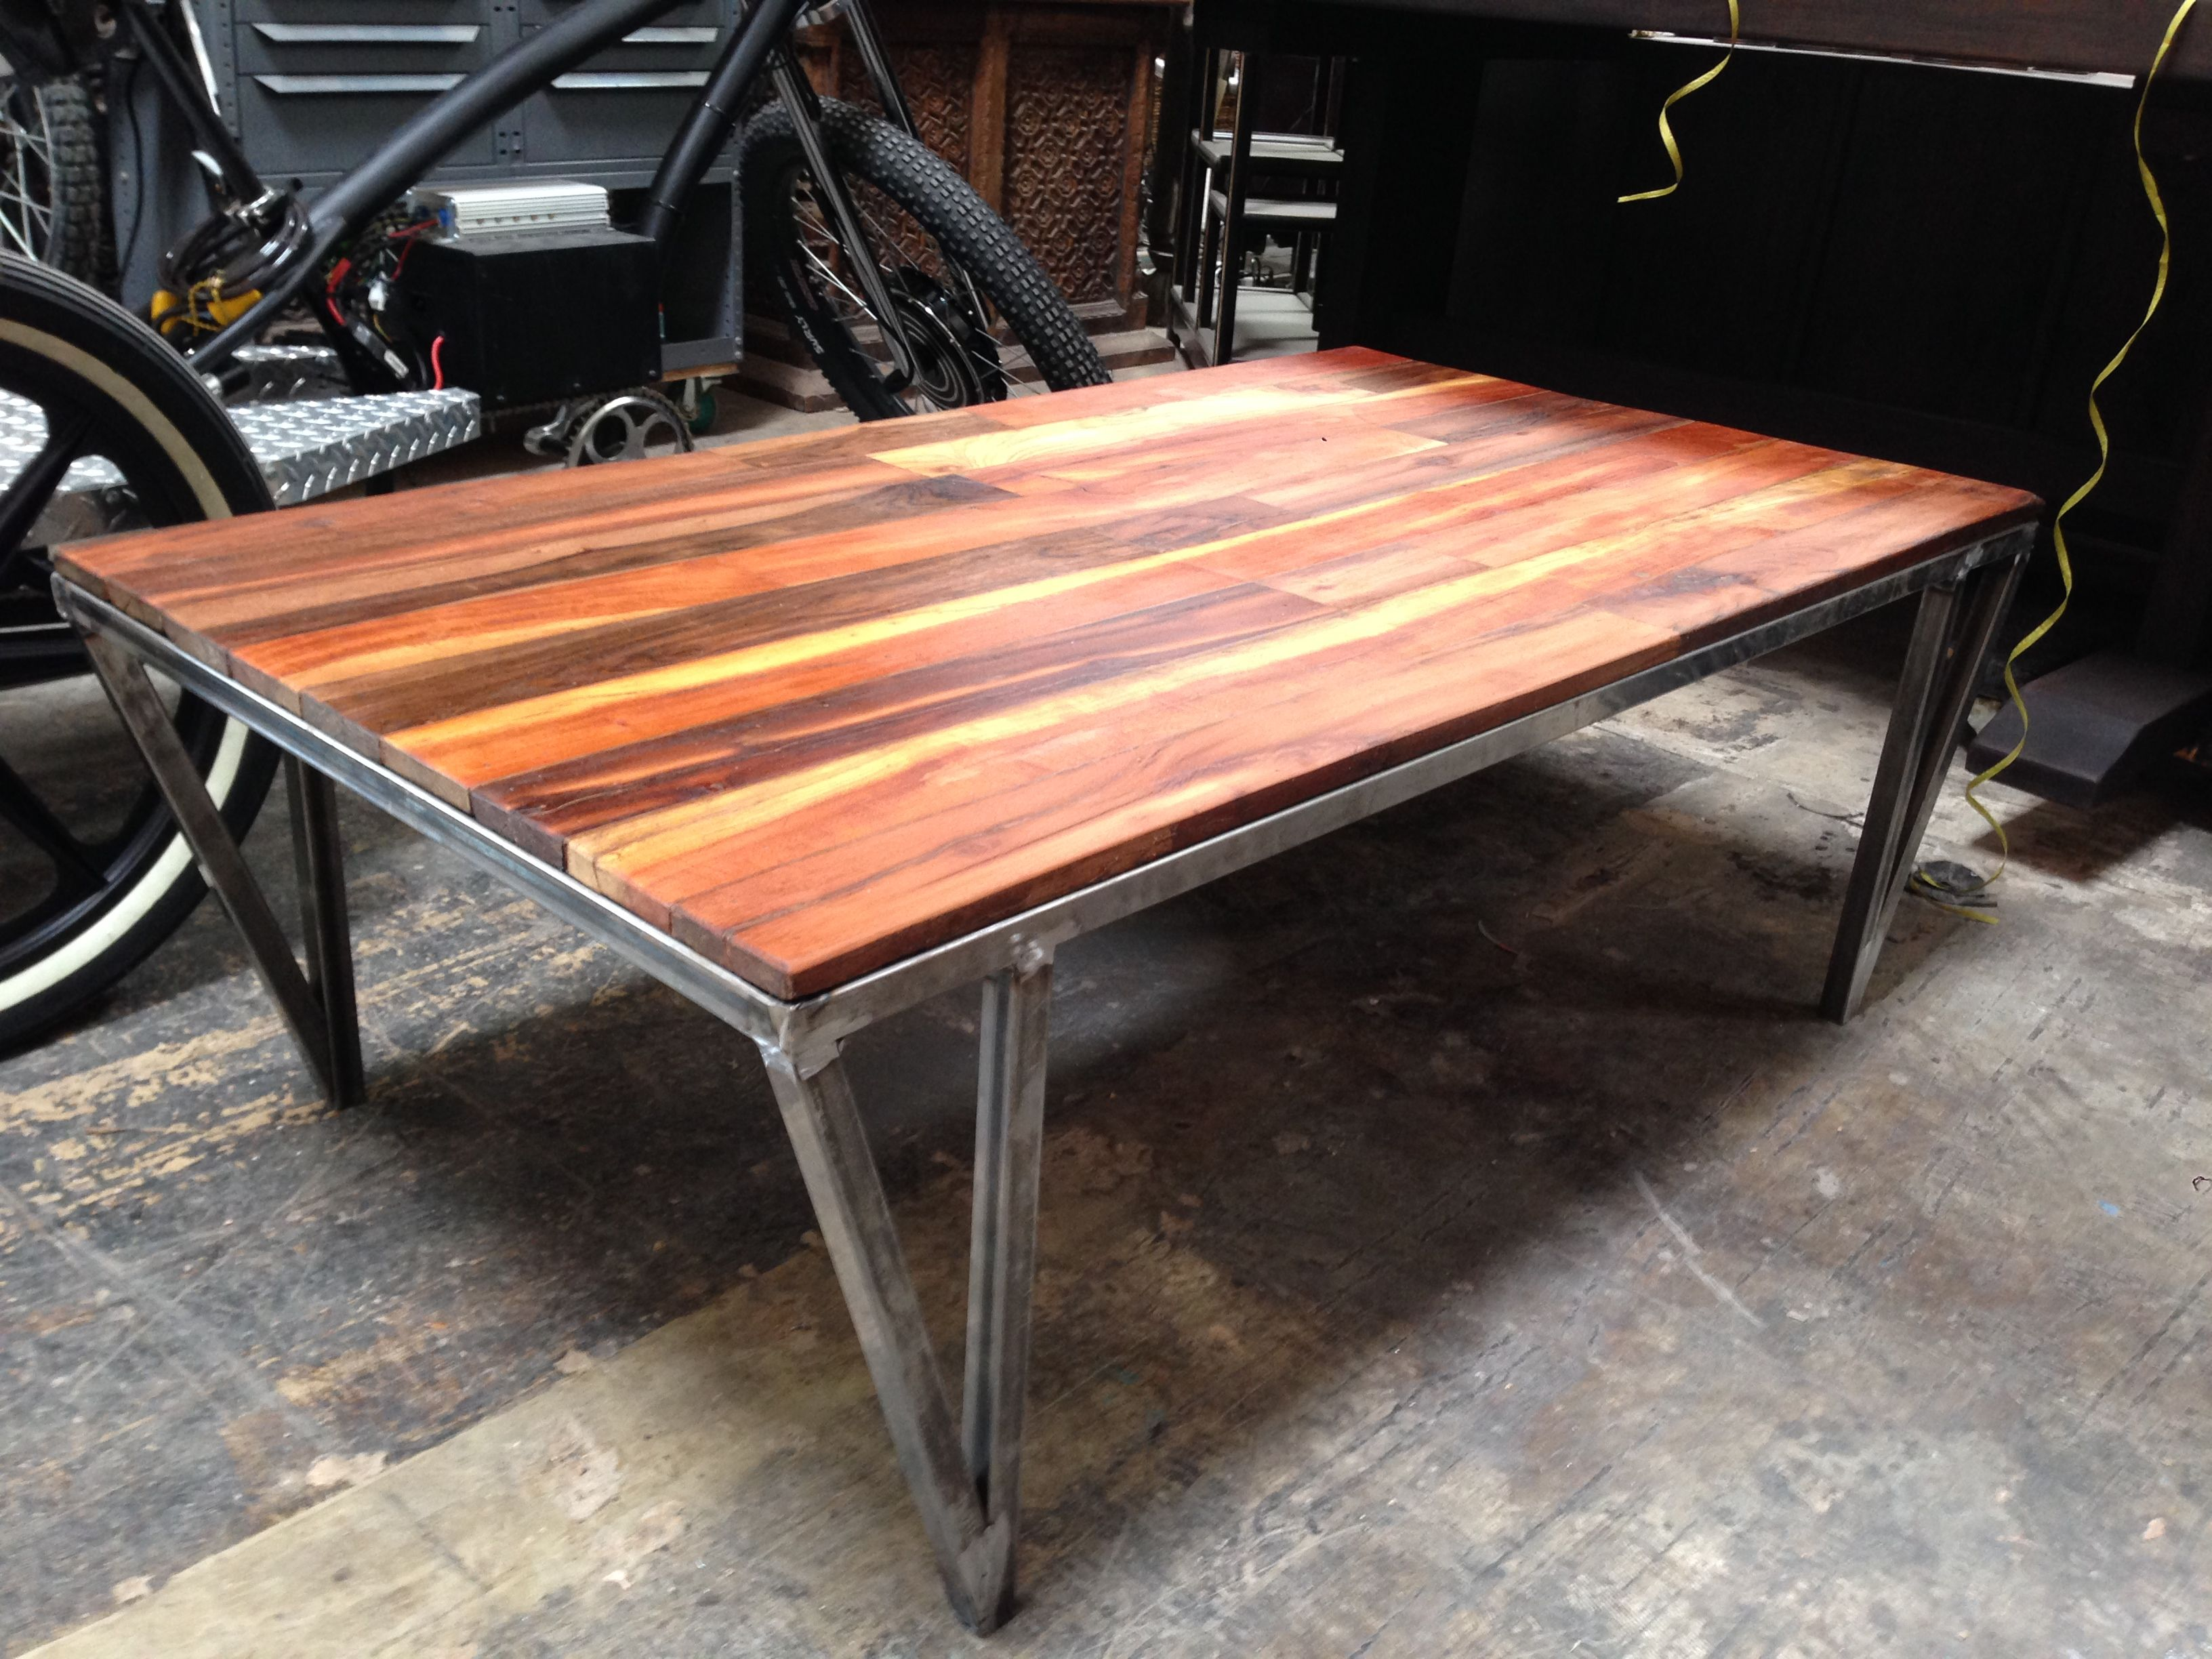 Enchanting Brown Varnished Reclaimed Wood Coffee Table With Iron